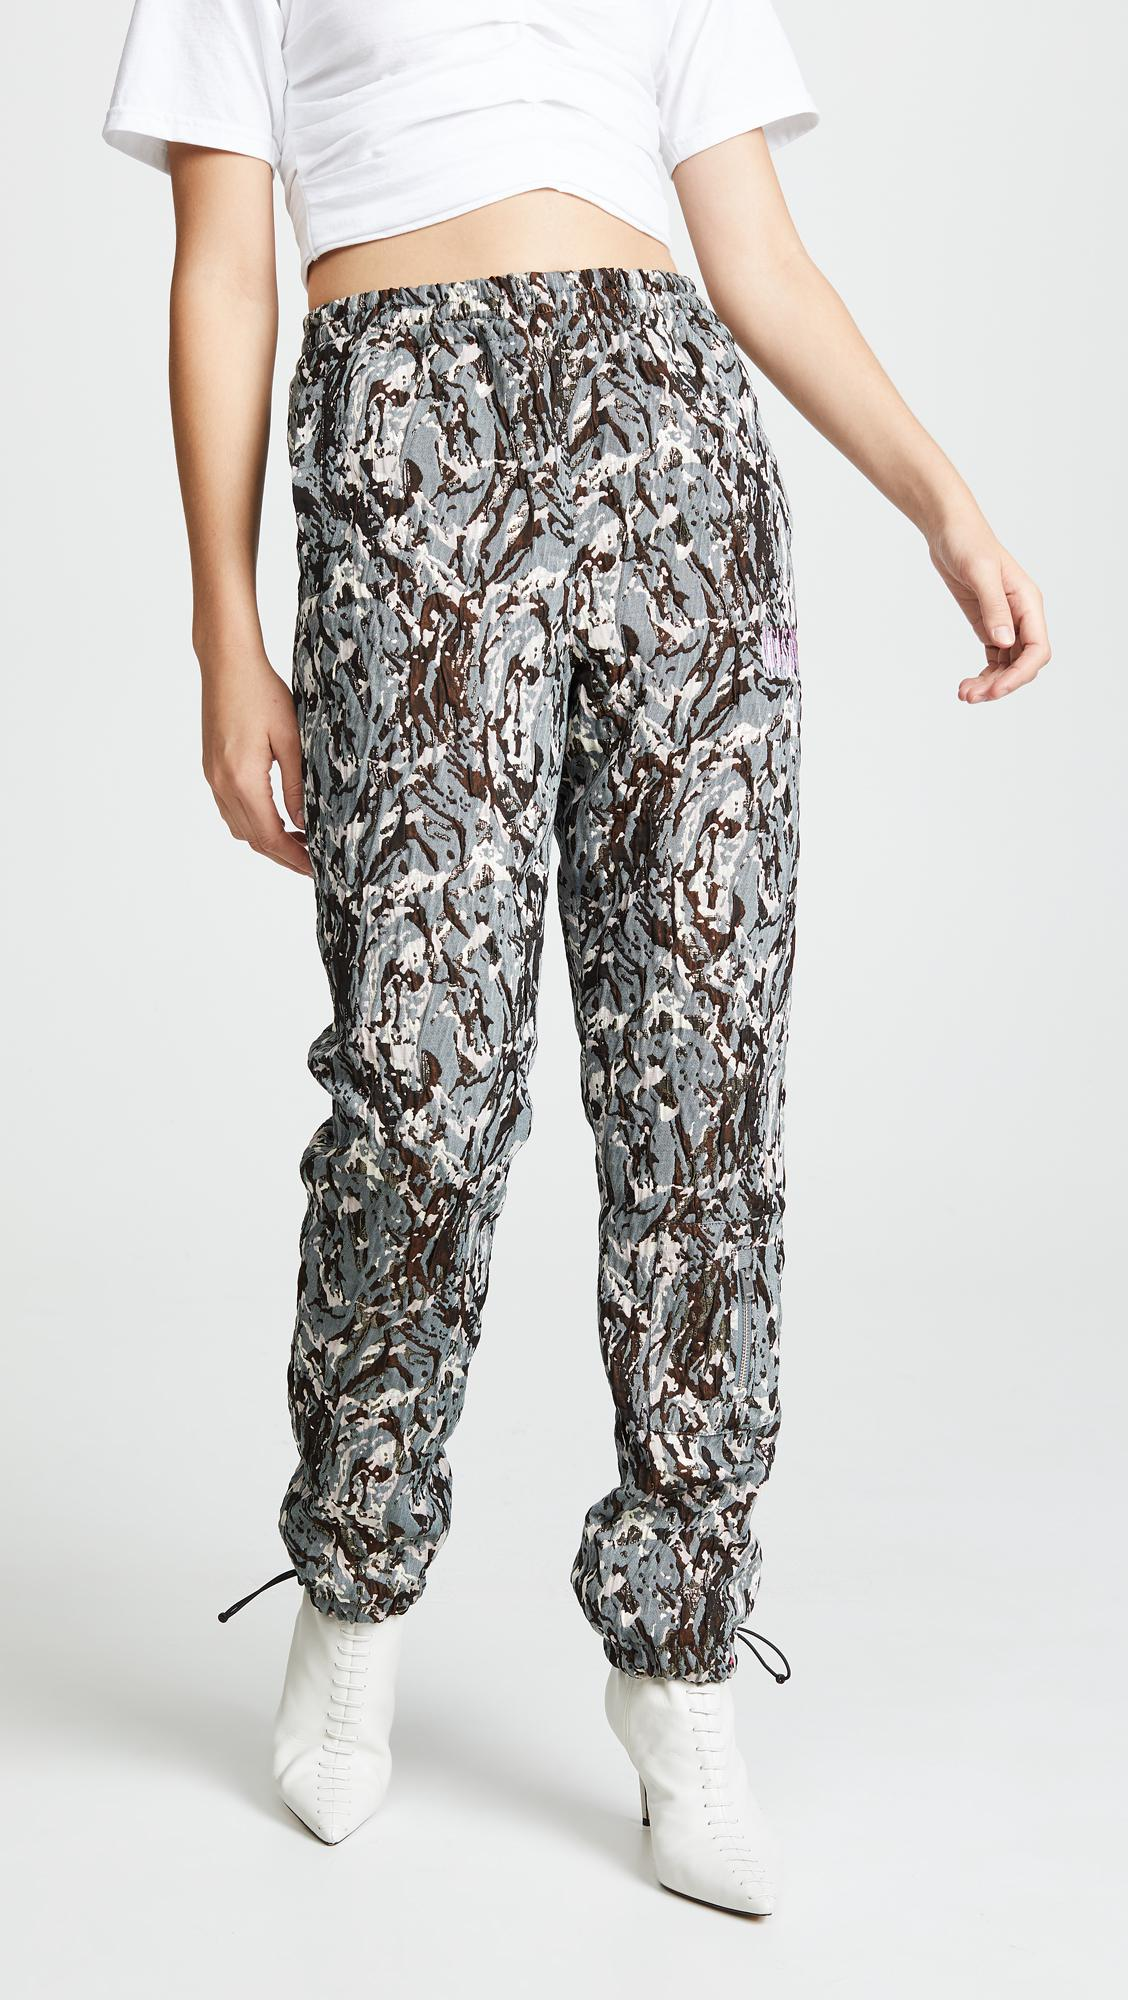 a9446e4edca4 Lyst - MISBHV Camouflage Track Pants